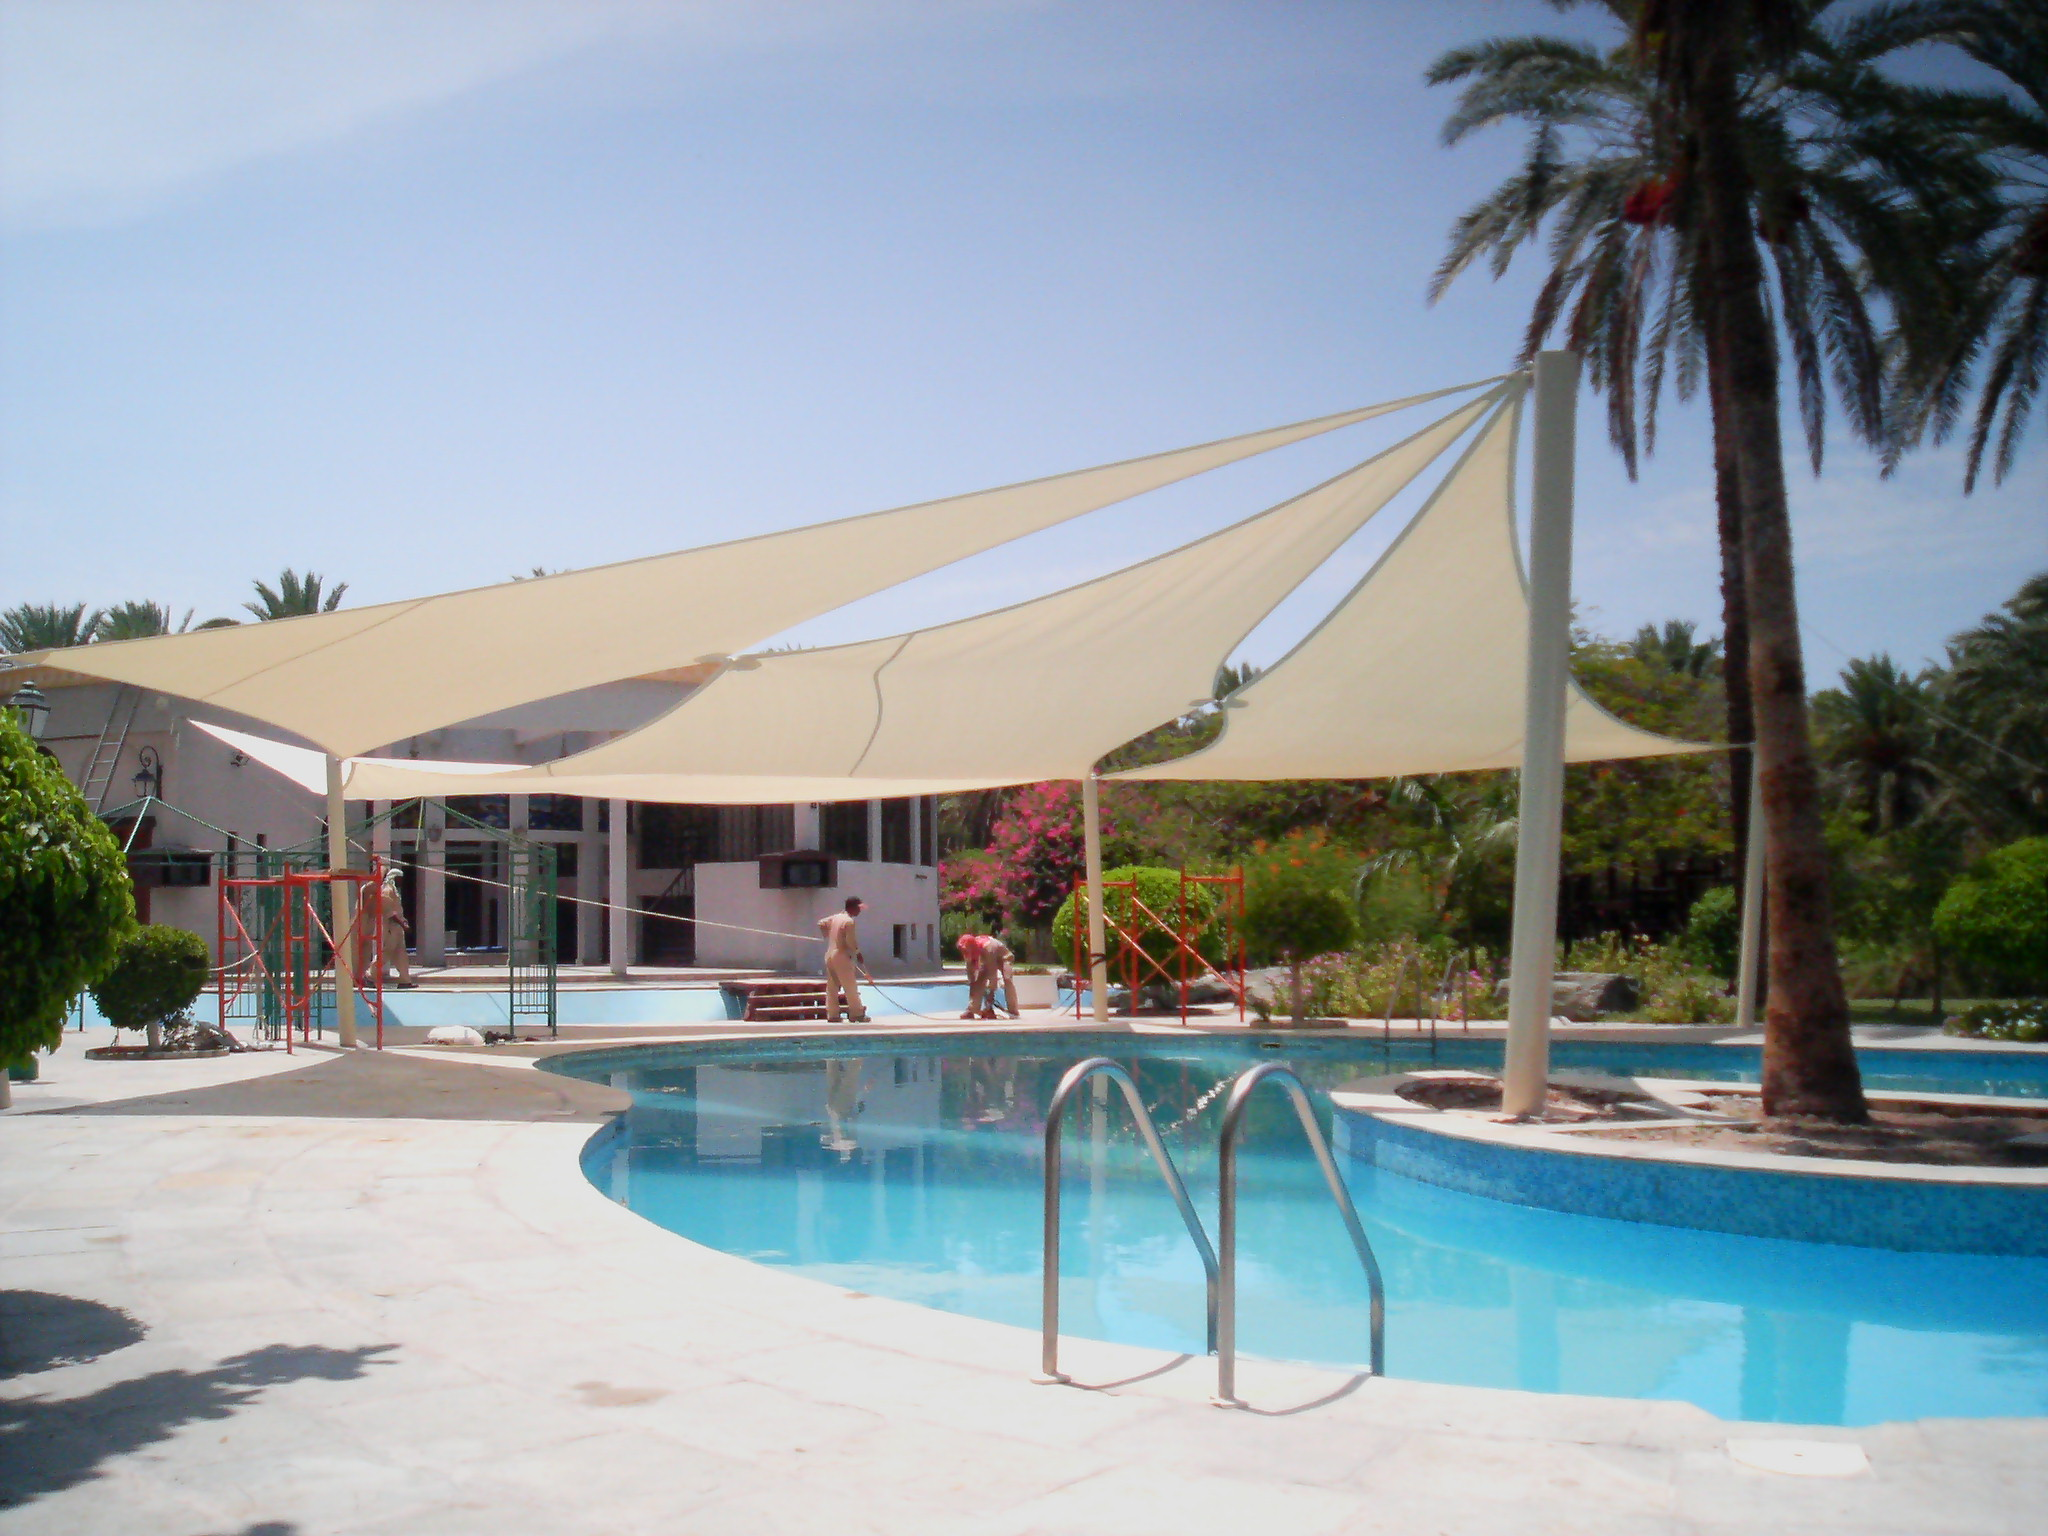 Swimming Pool Shade Structures UAE